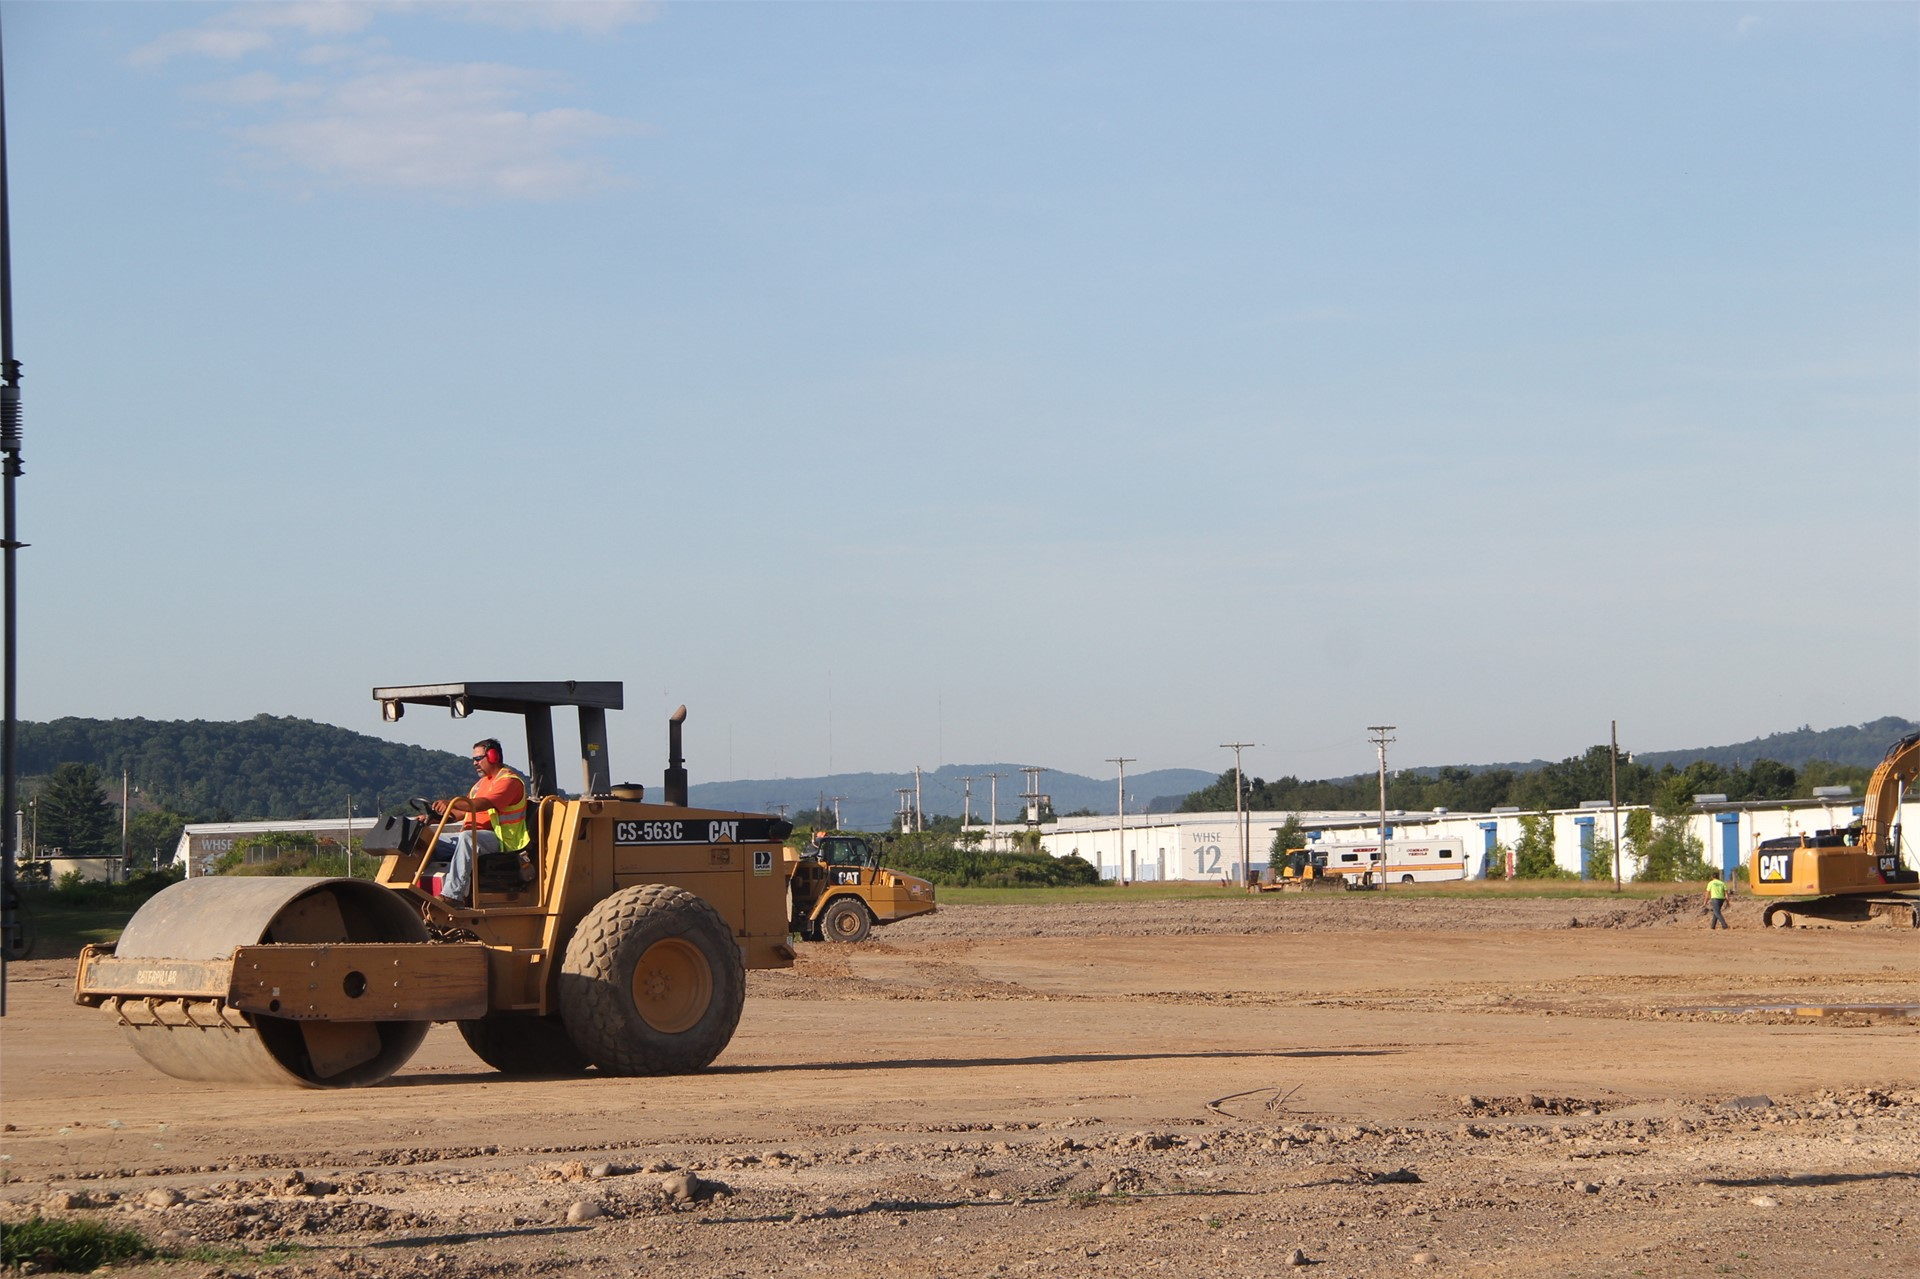 wide shot of construction scene outdoors with person working in machine